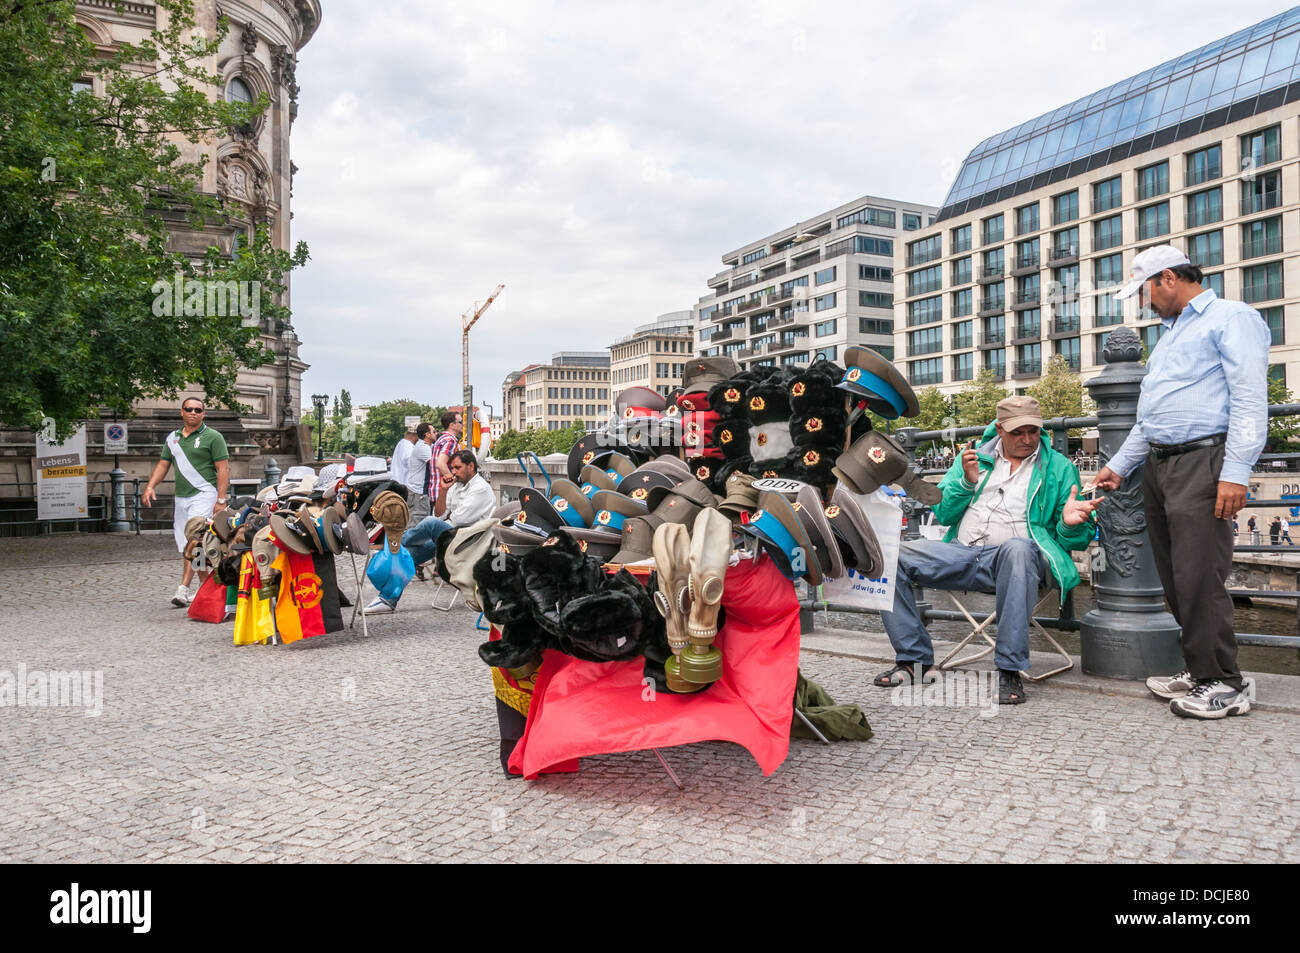 Middle Eastern men, street vendors, selling military memorabilia, visored caps, flags, at the Berlin Catherdral Stock Photo